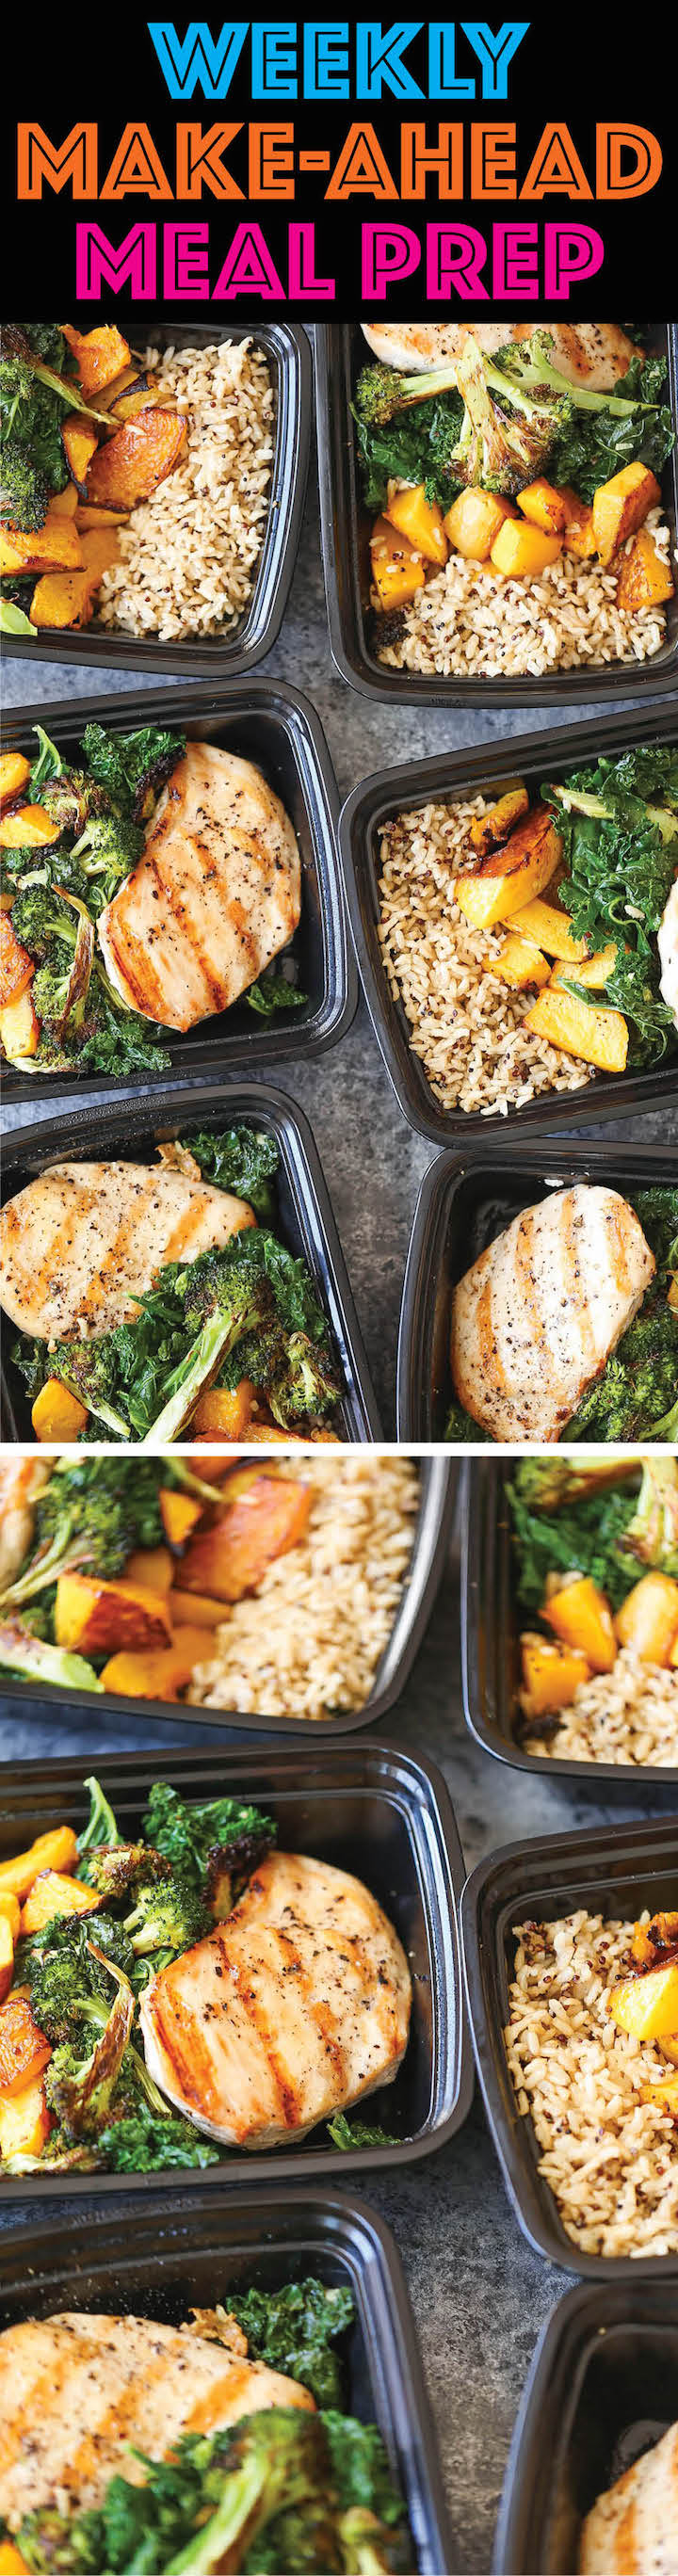 Weekly Meal Prep - Plan ahead and make healthy choices all week. You can stay on track eating for the week (great for portion control) and save money/time!